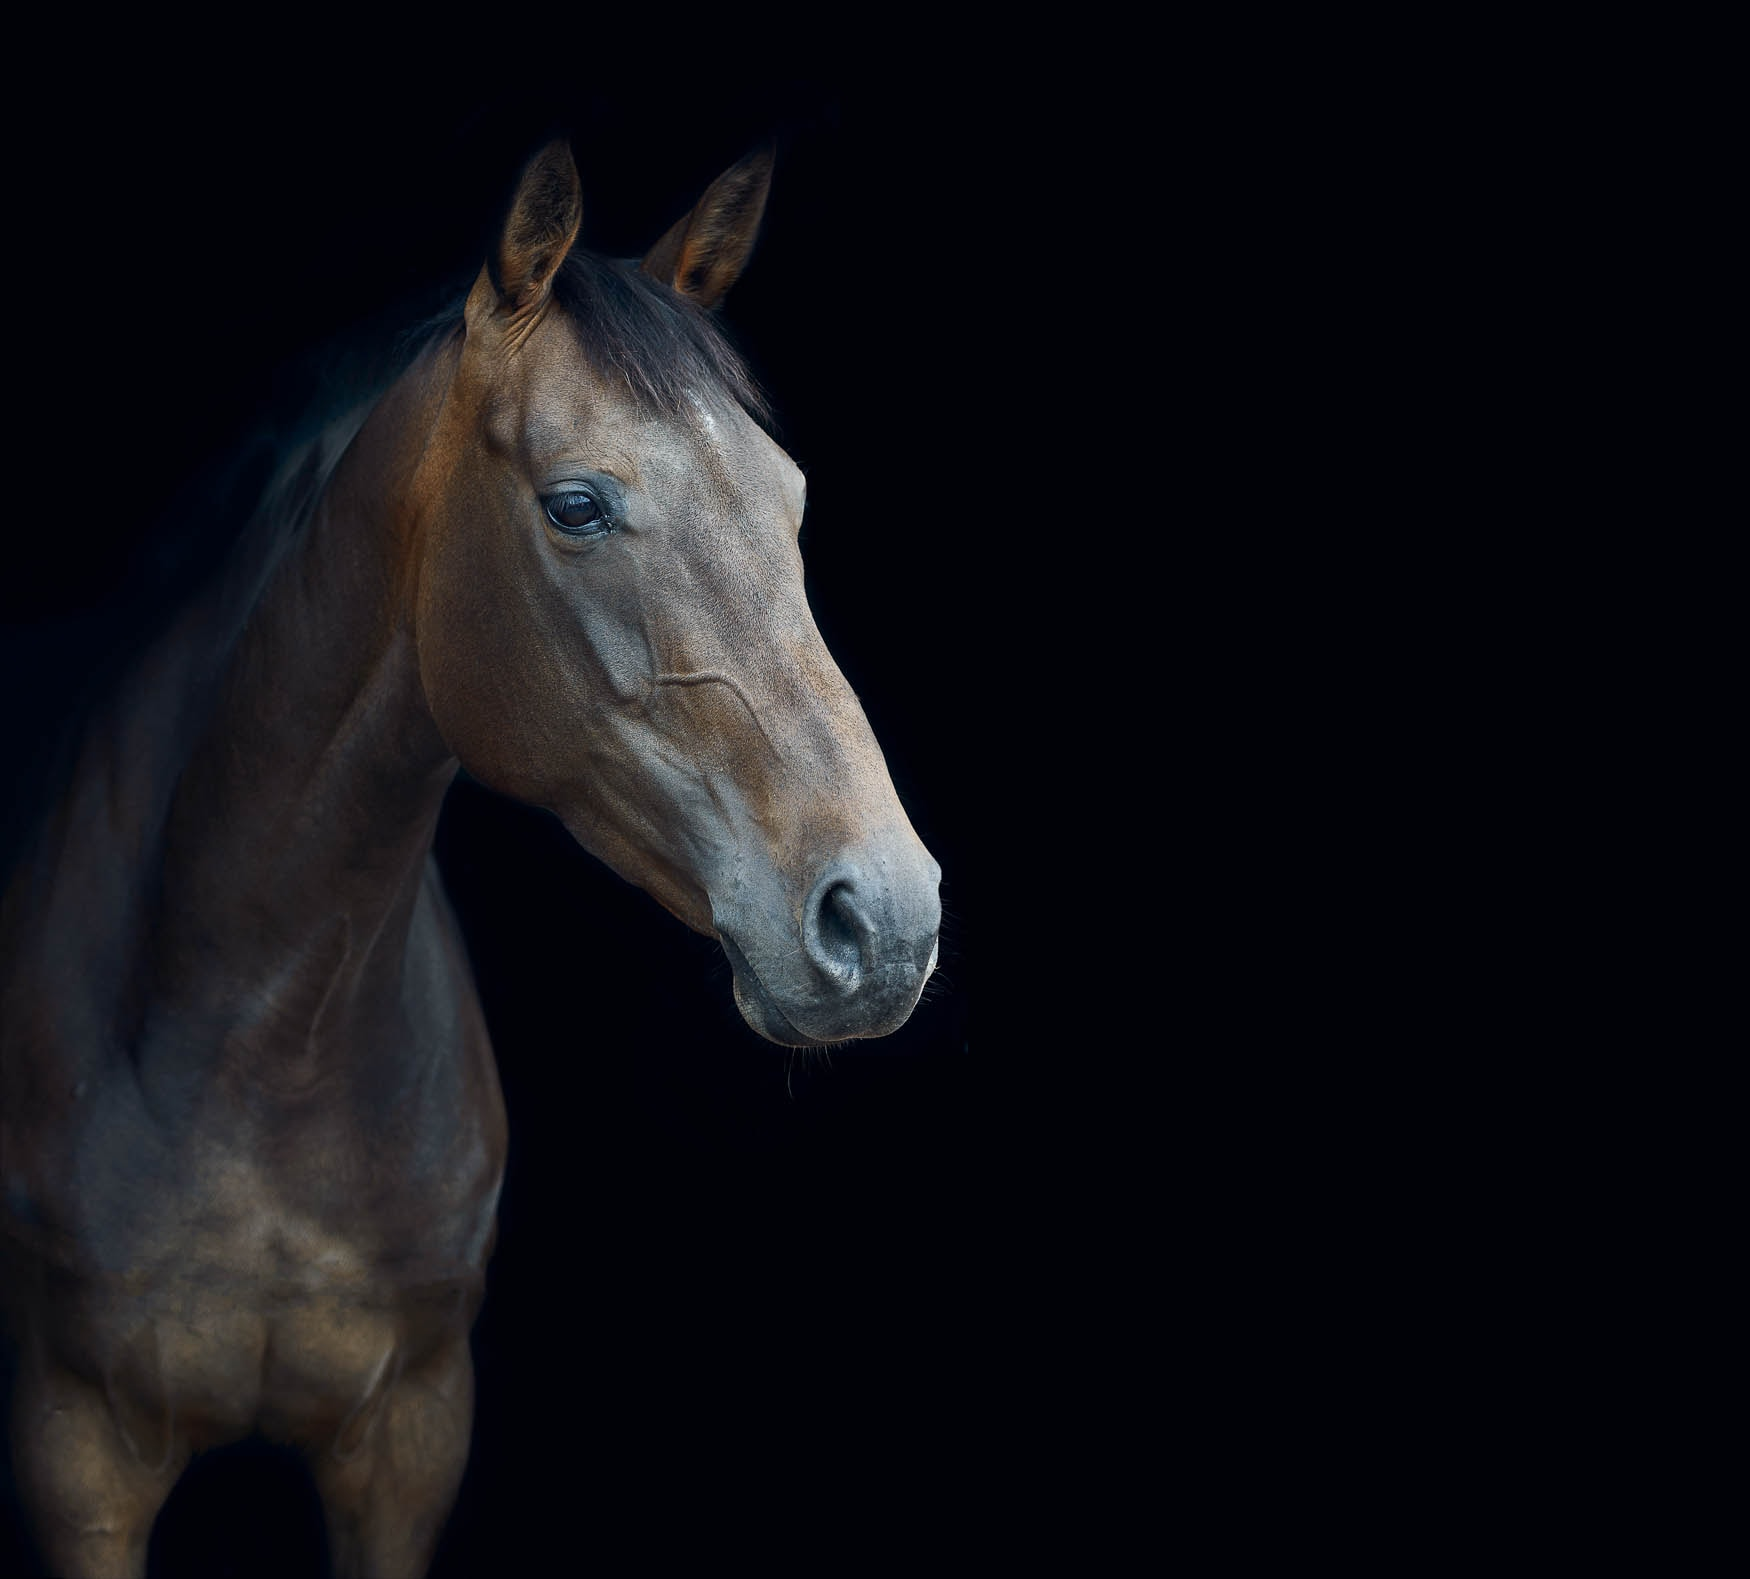 Eventing horse in stables - Photographer Cheshire